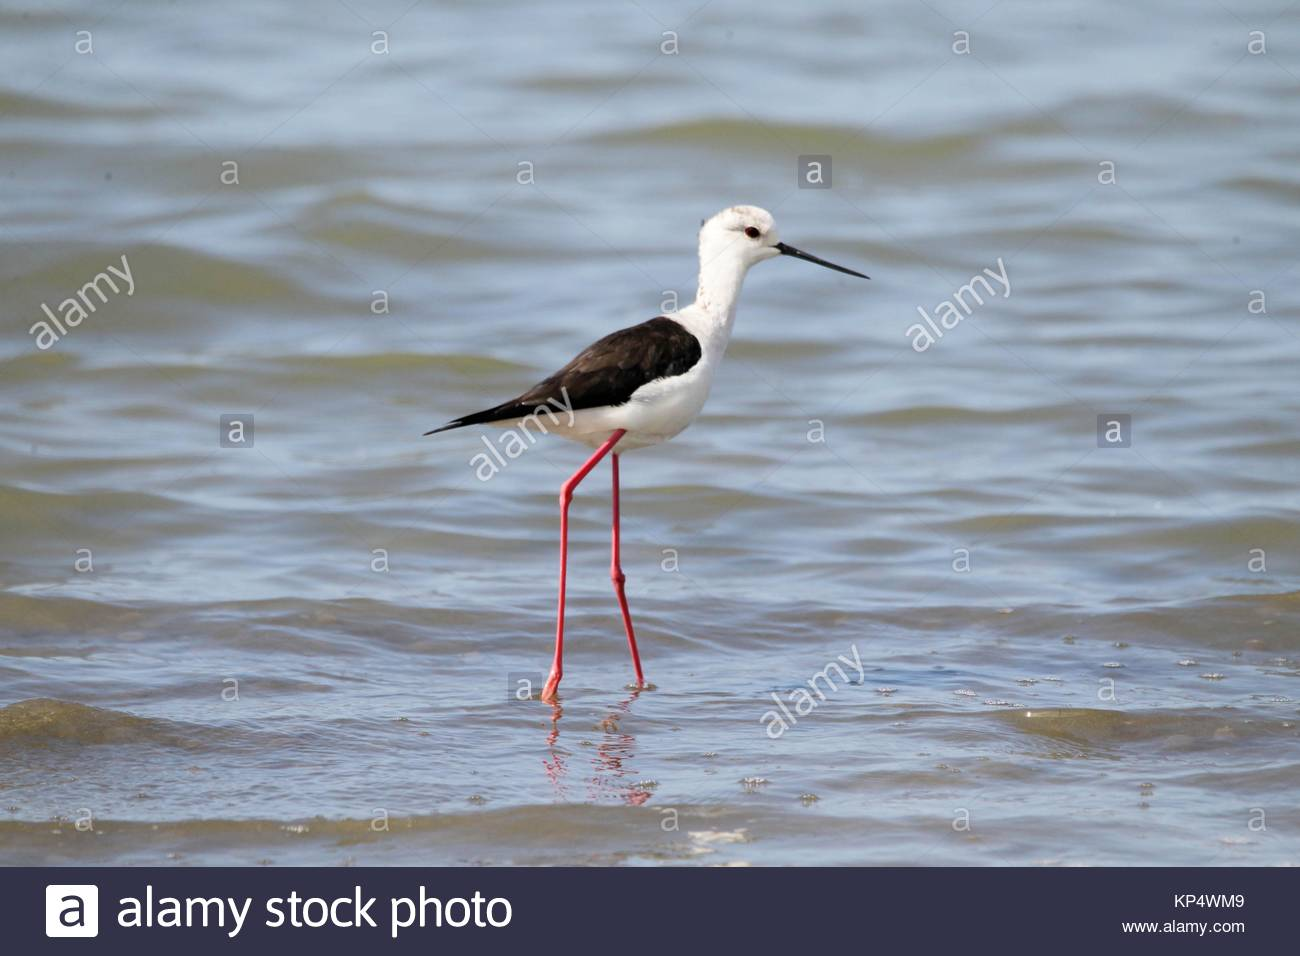 White-headed Stilt (Himantopus himantopus leucocephalus) wading in shallow water in the lagoon of Mesologgi Greece. - Stock Image